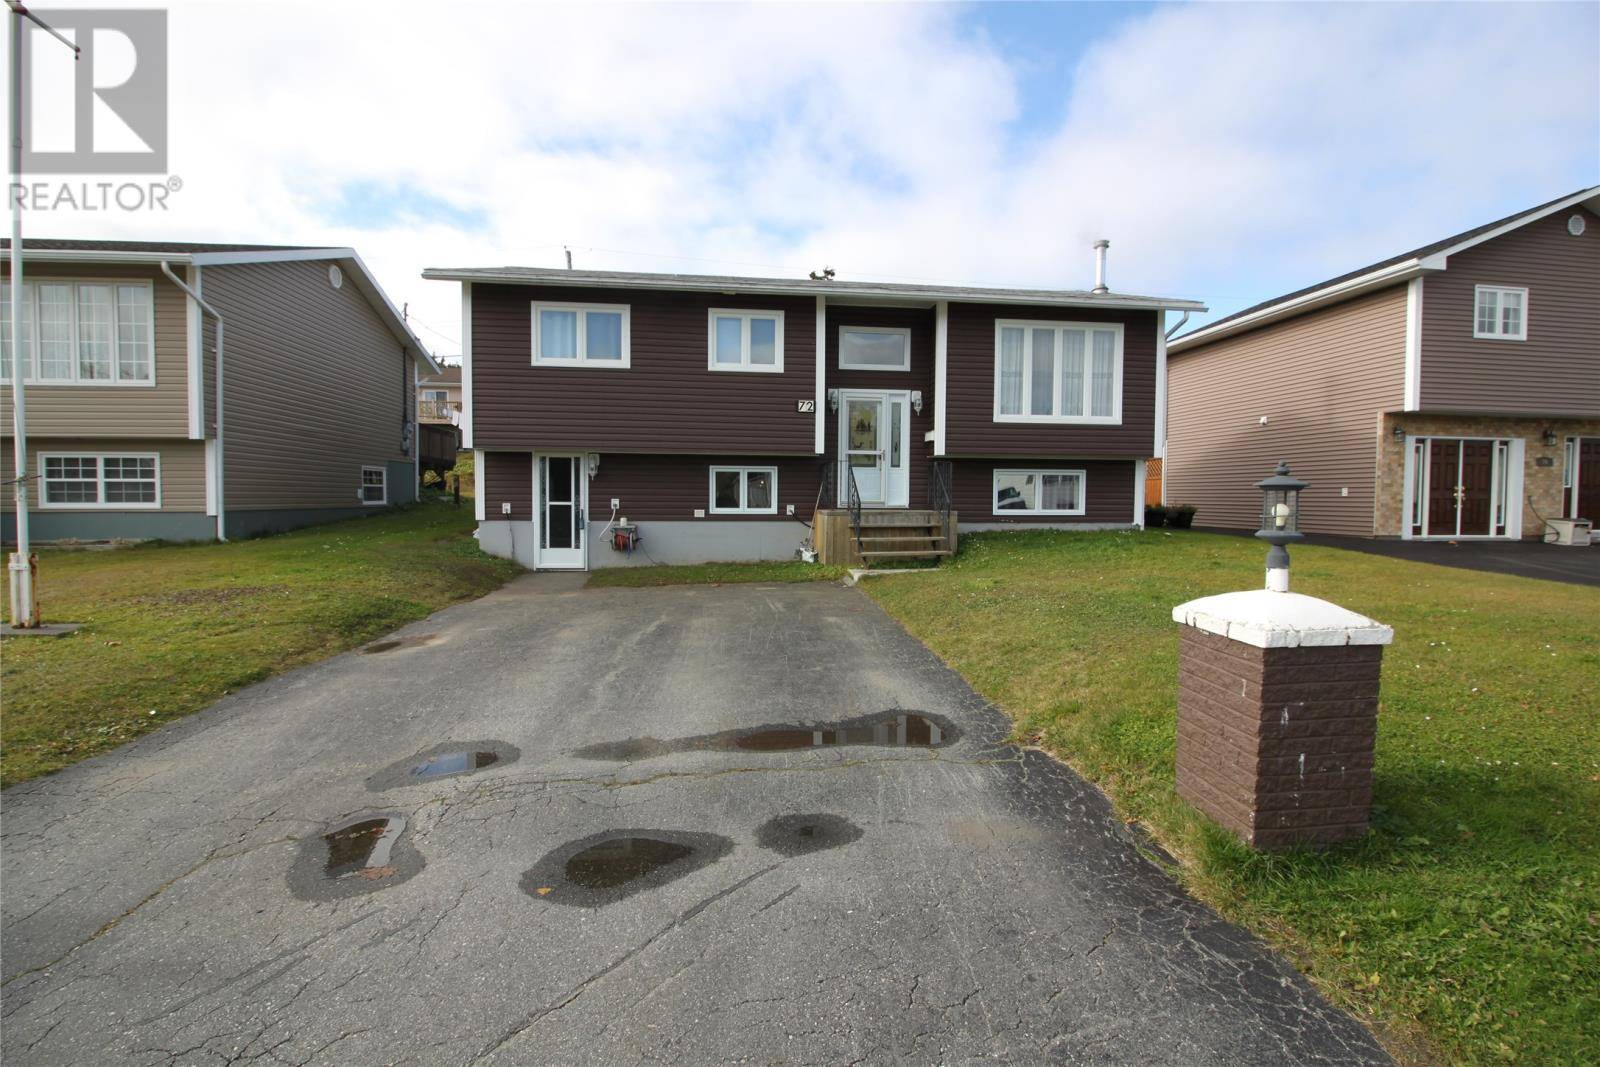 House for sale at 72 Valley View Dr Corner Brook Newfoundland - MLS: 1205392